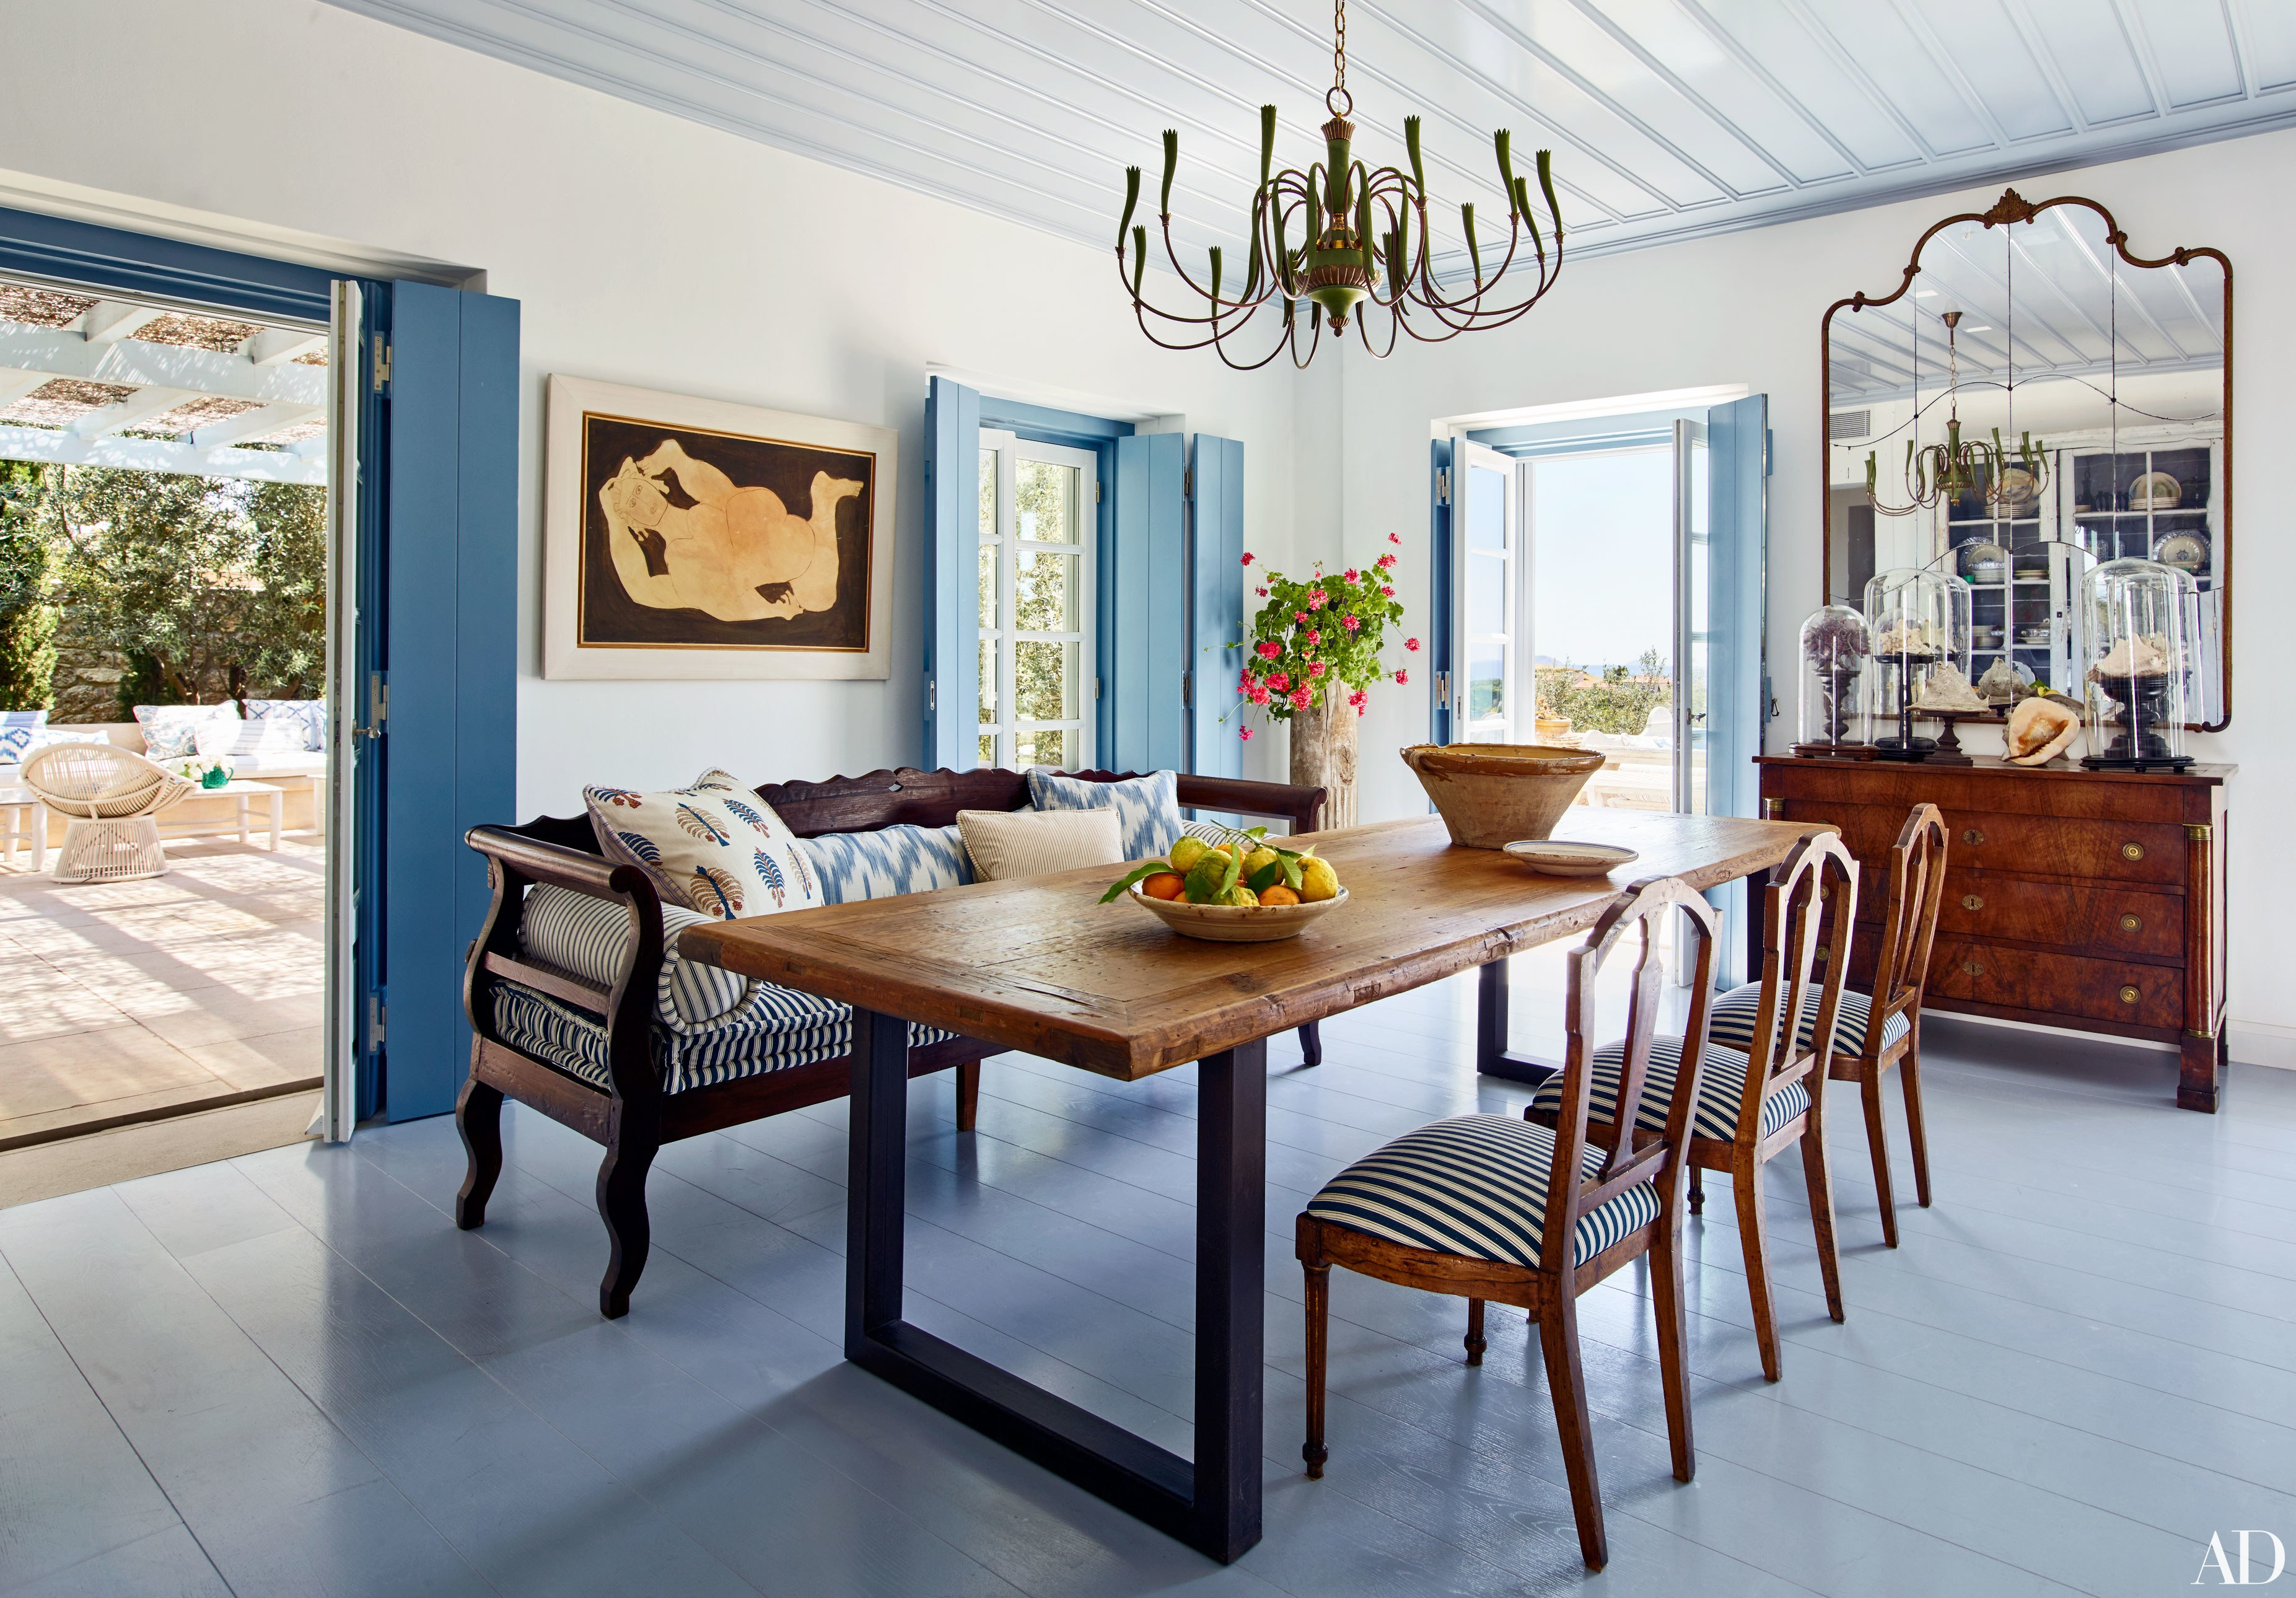 Tips to Mix and Match Dining Room Chairs Successfully - Architectural Digest